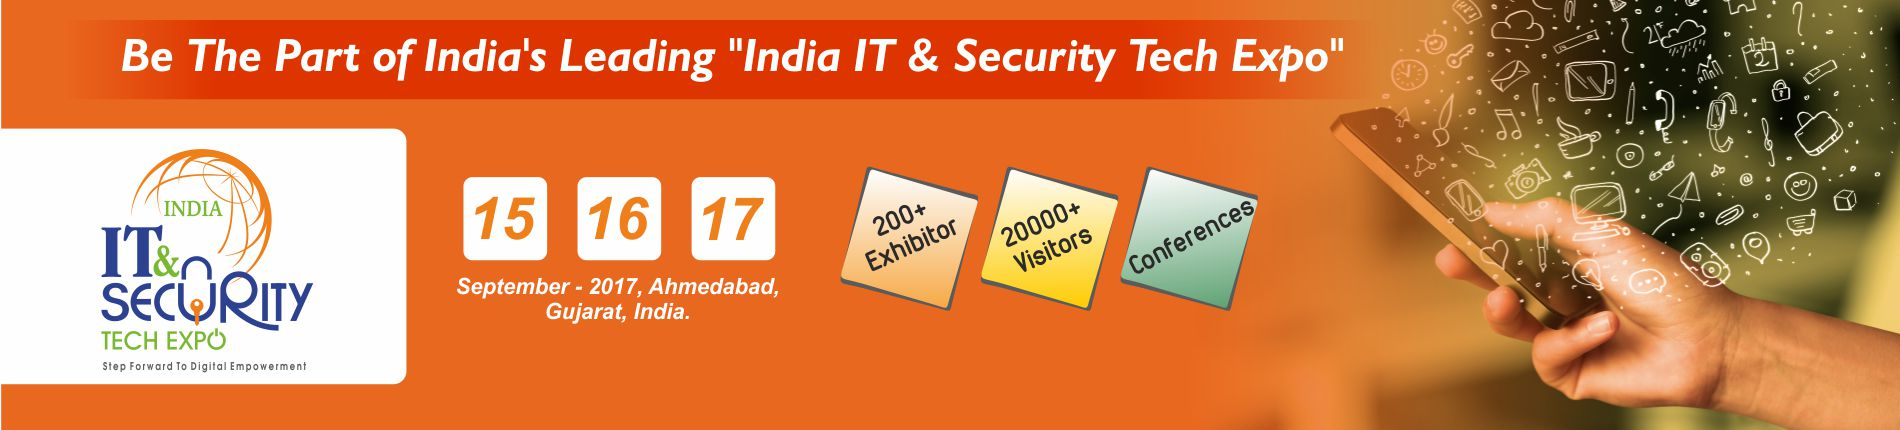 India IT & Security Tech Expo